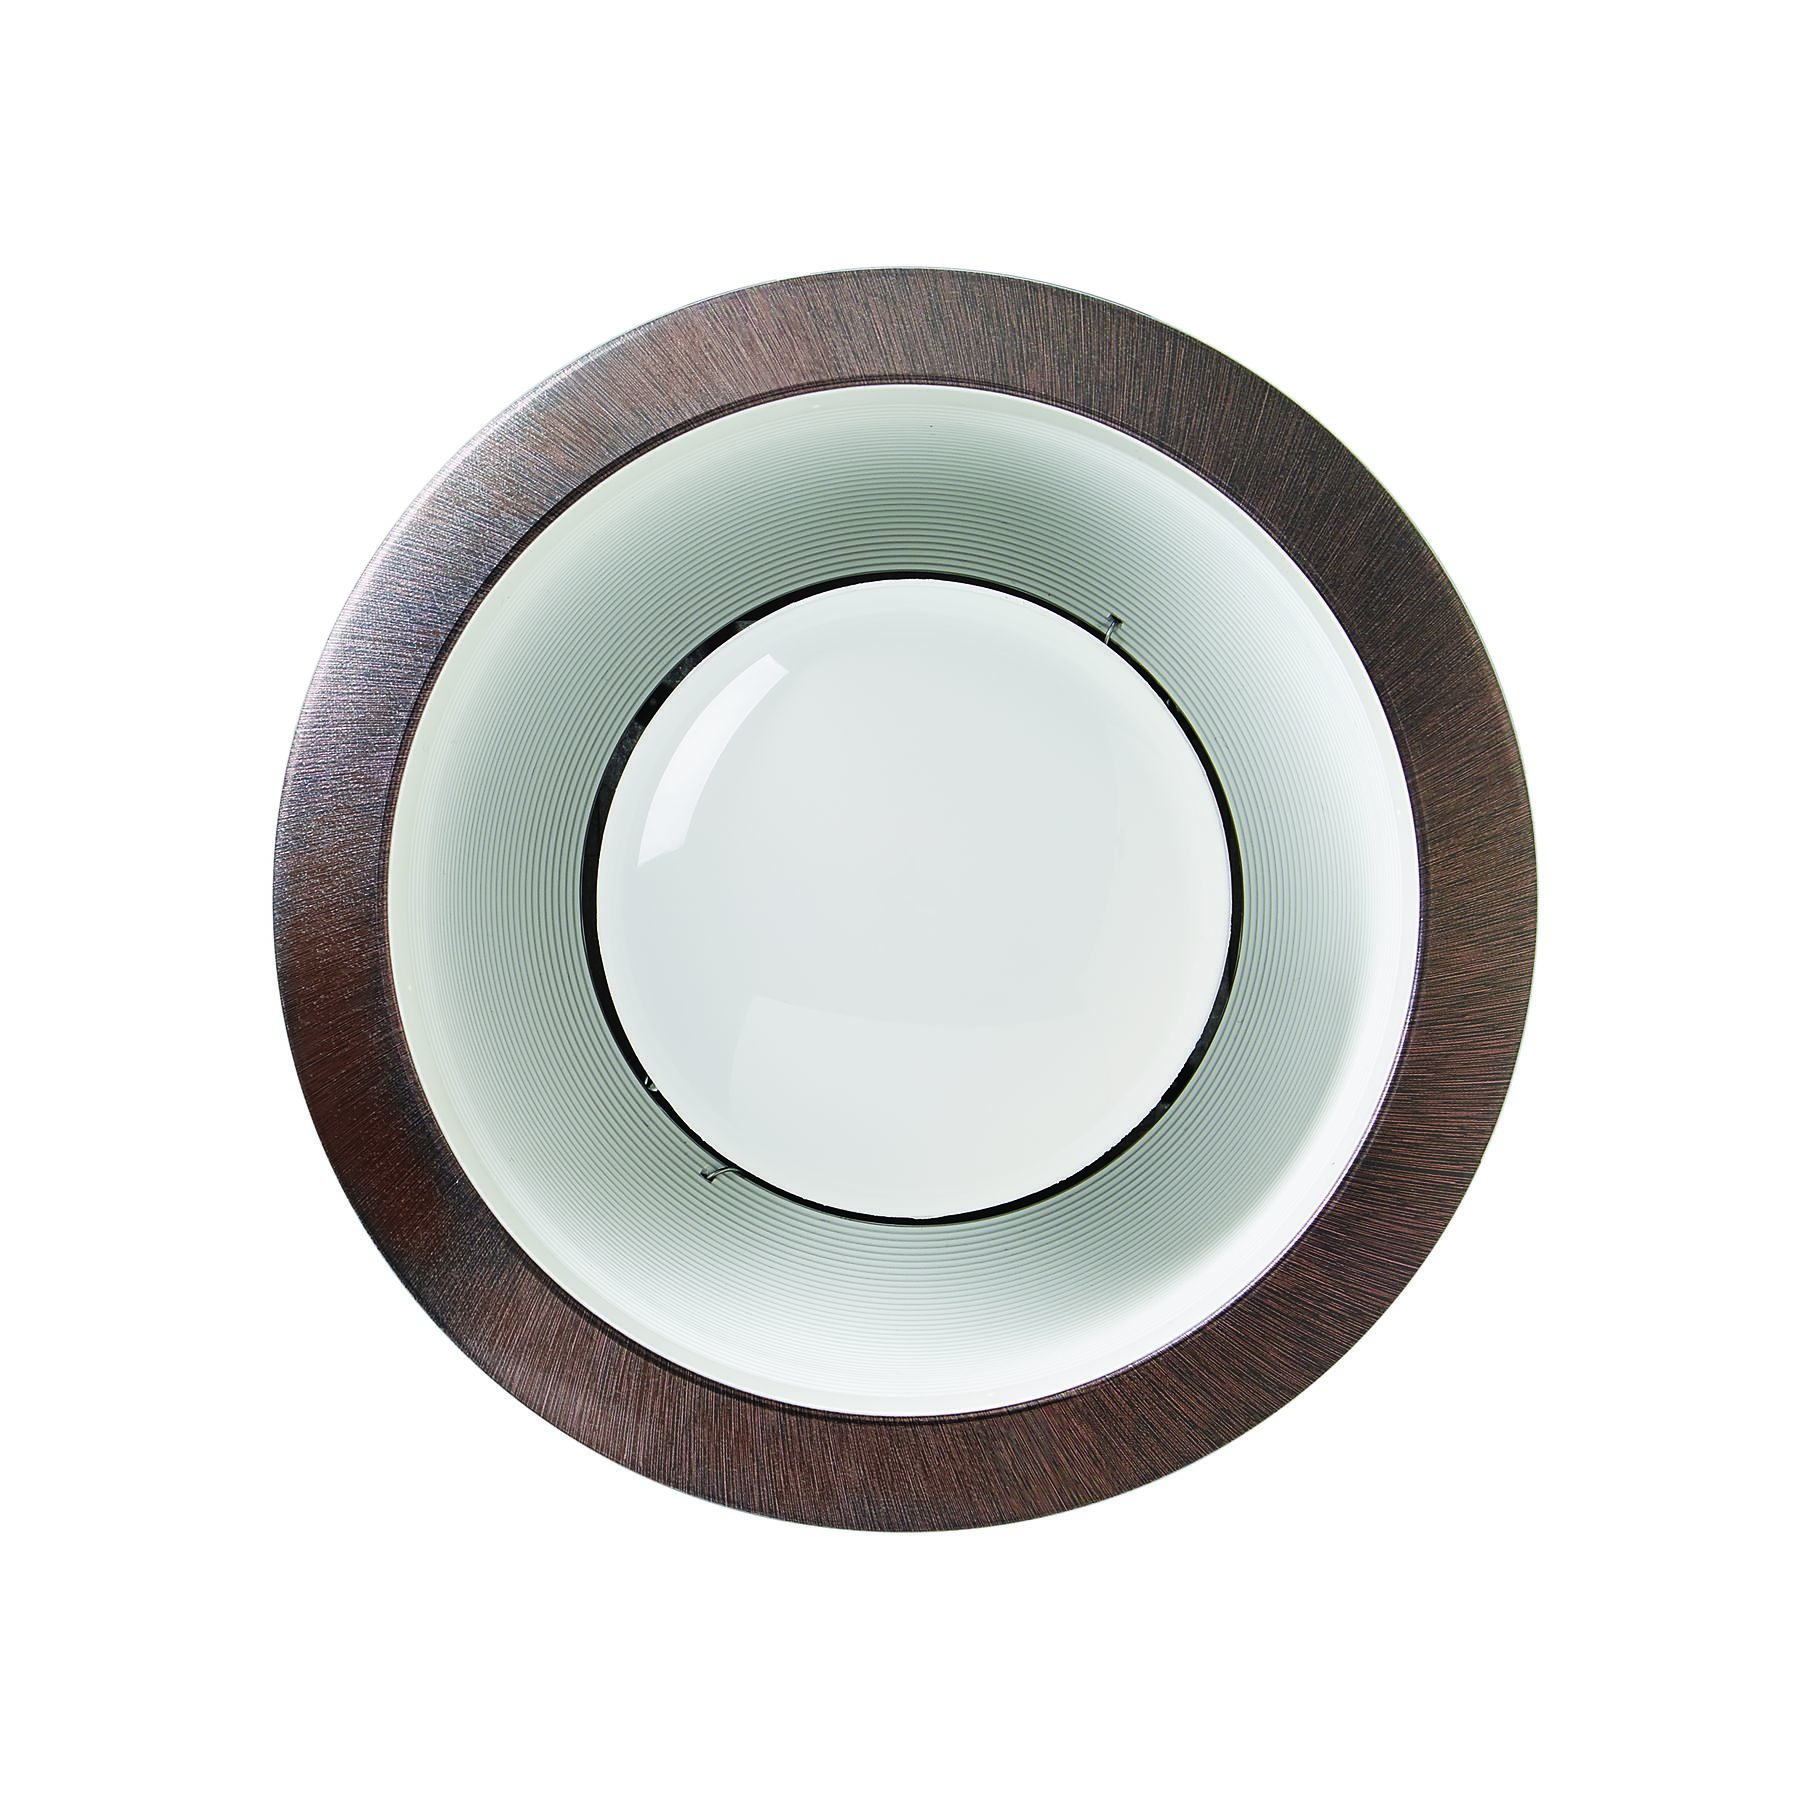 Broan® Recessed 50-80 CFM Ventilation Fan with LED Light, 0.8-2.0 Sones; ENERGY STAR® Certified